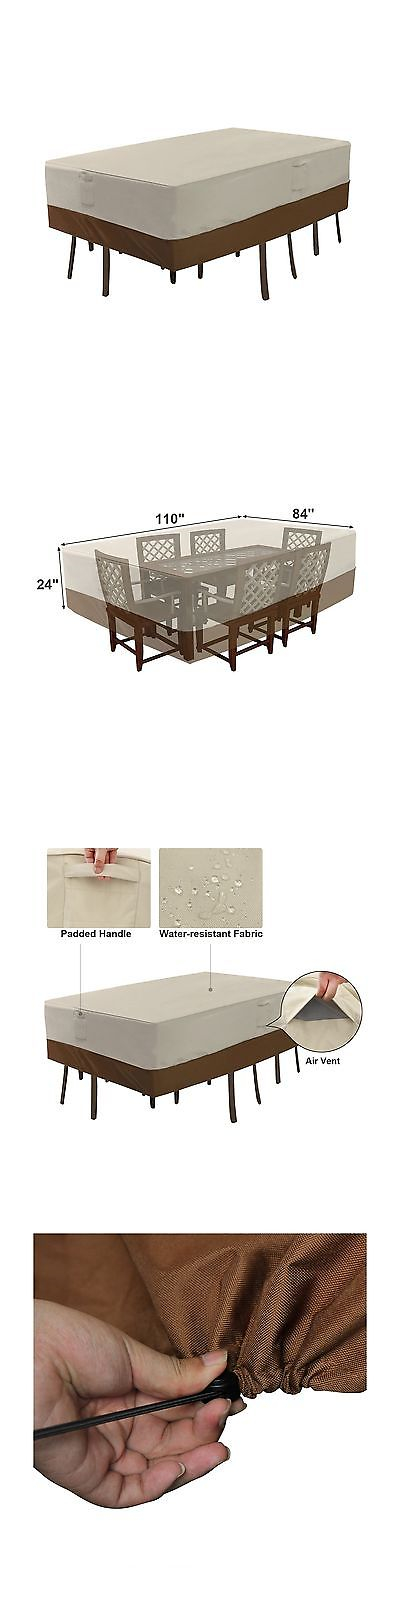 outdoor furniture covers waterproof. Contemporary Covers Outdoor Furniture Covers 177031 Songmics Patio Table And Chair Cover  Waterproof Recta On R